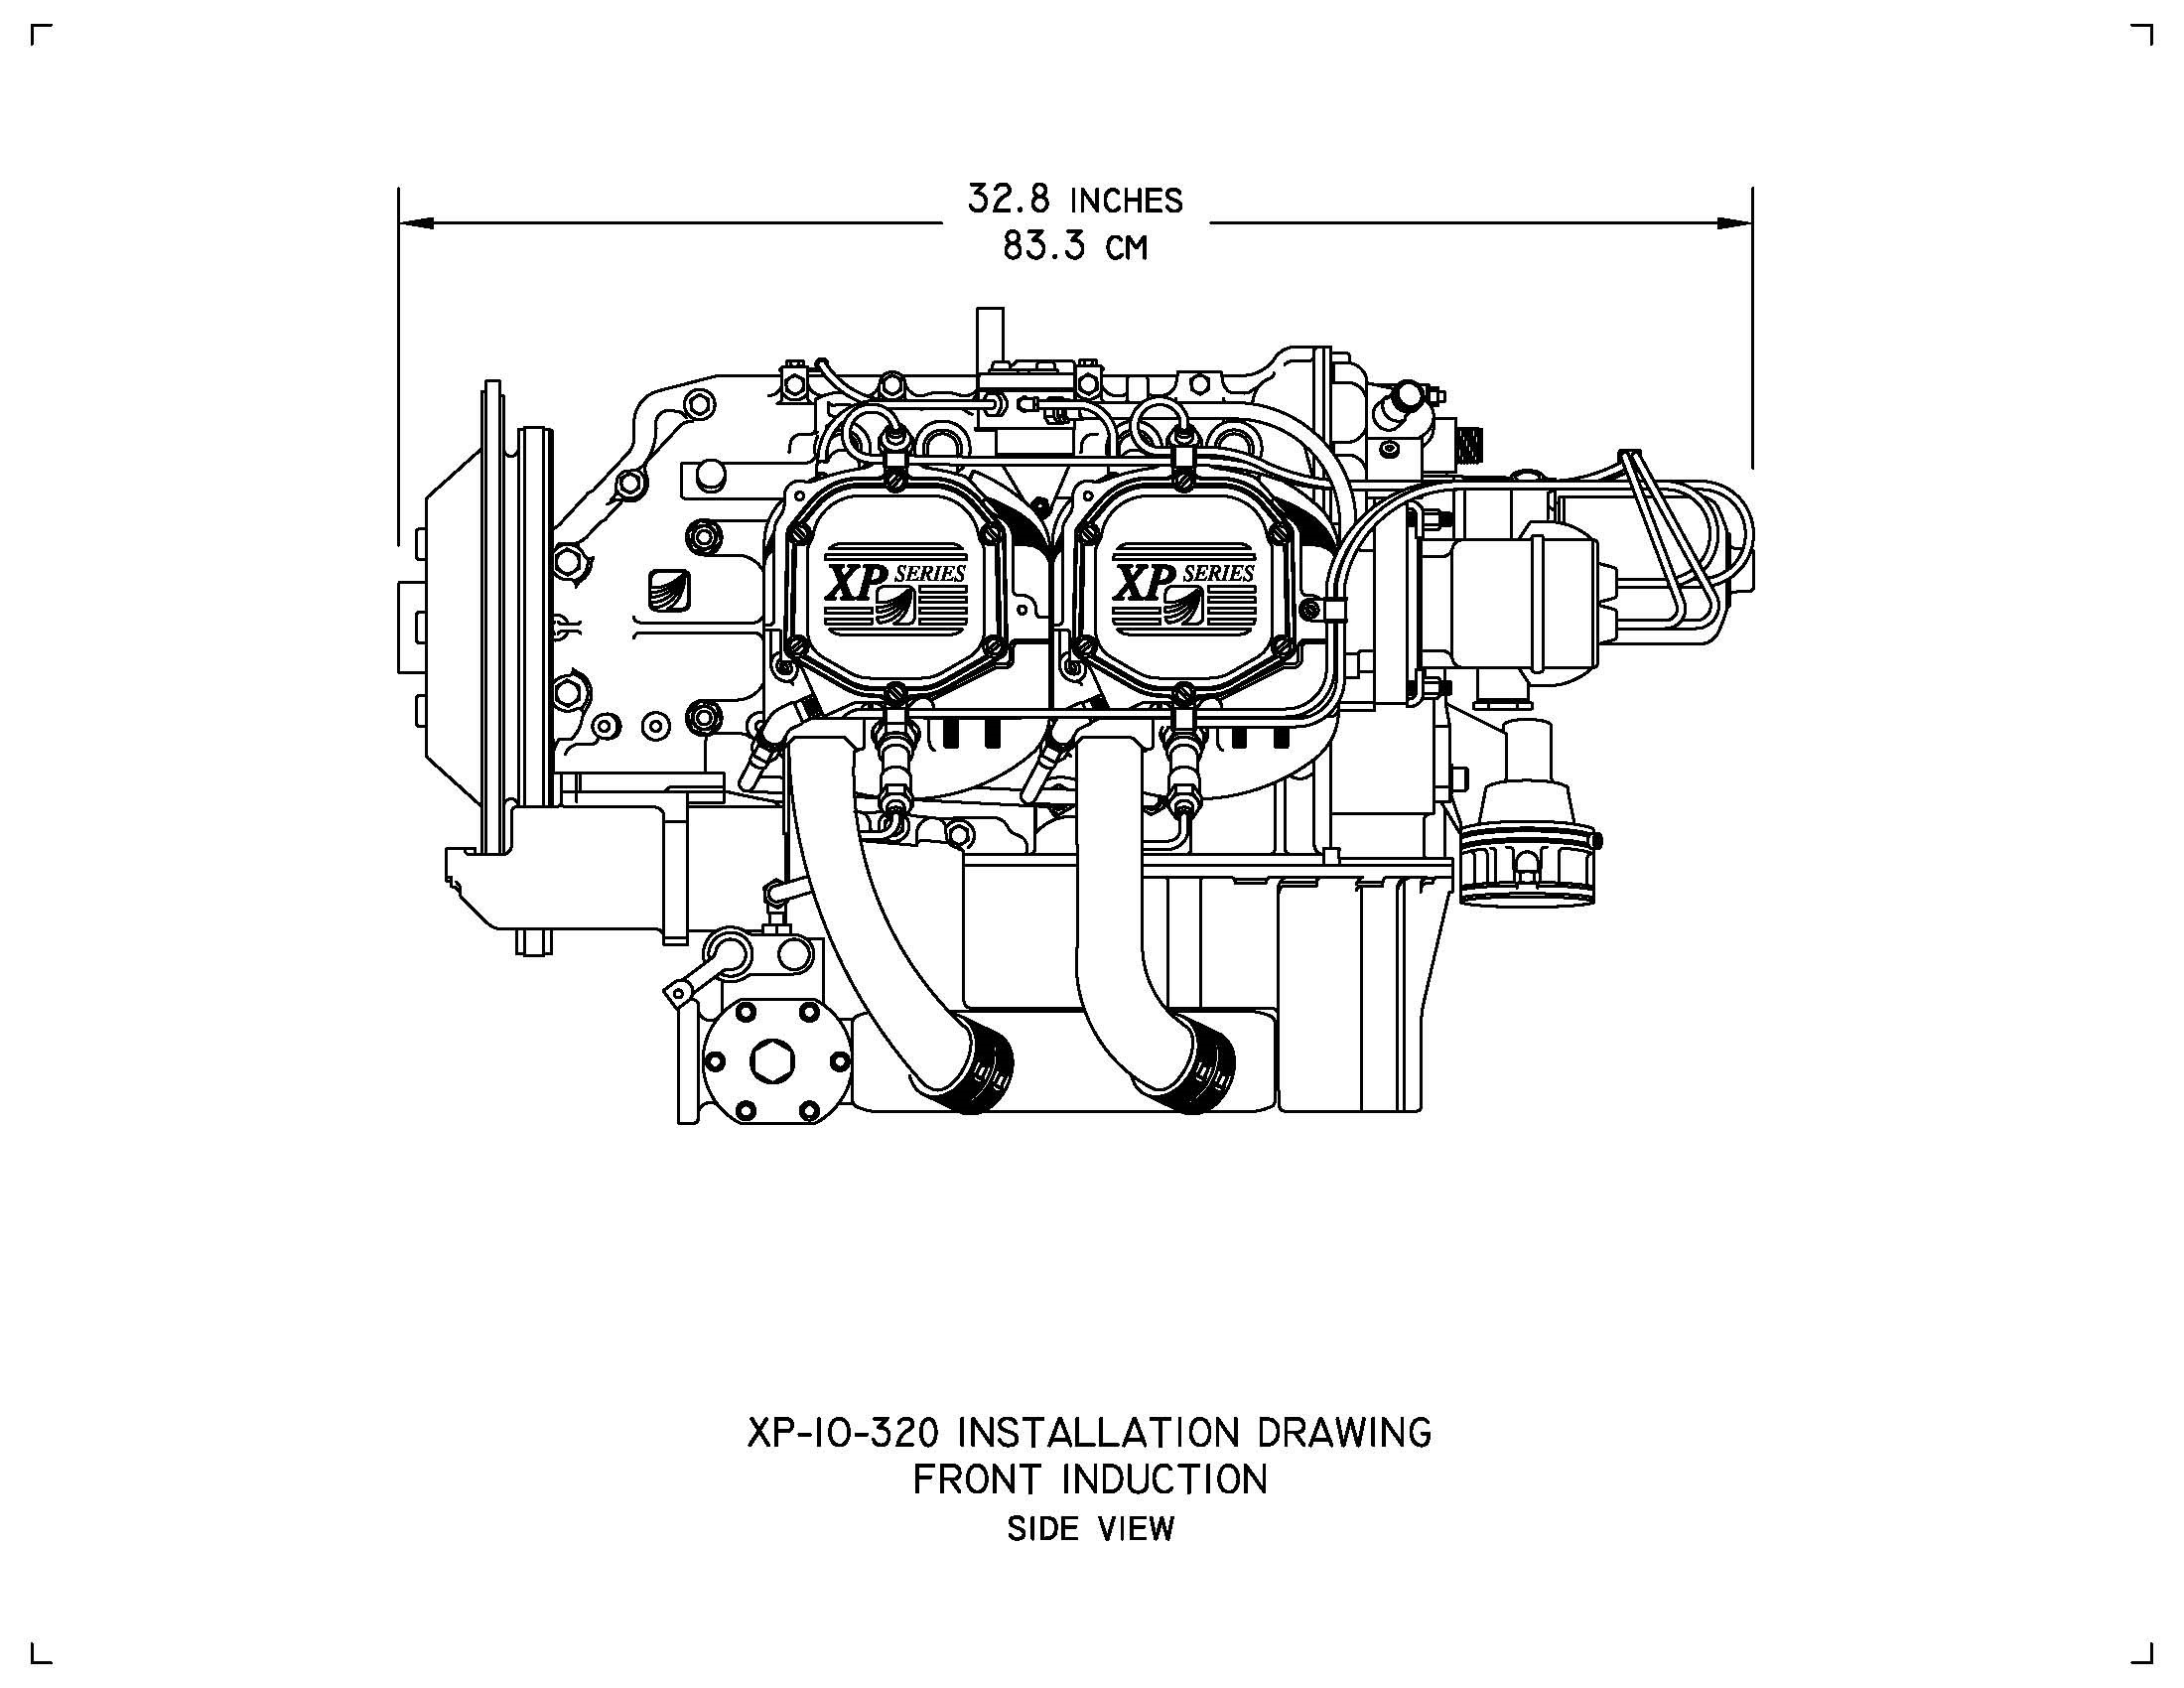 Superior Xp 320 Engine Spa Llc